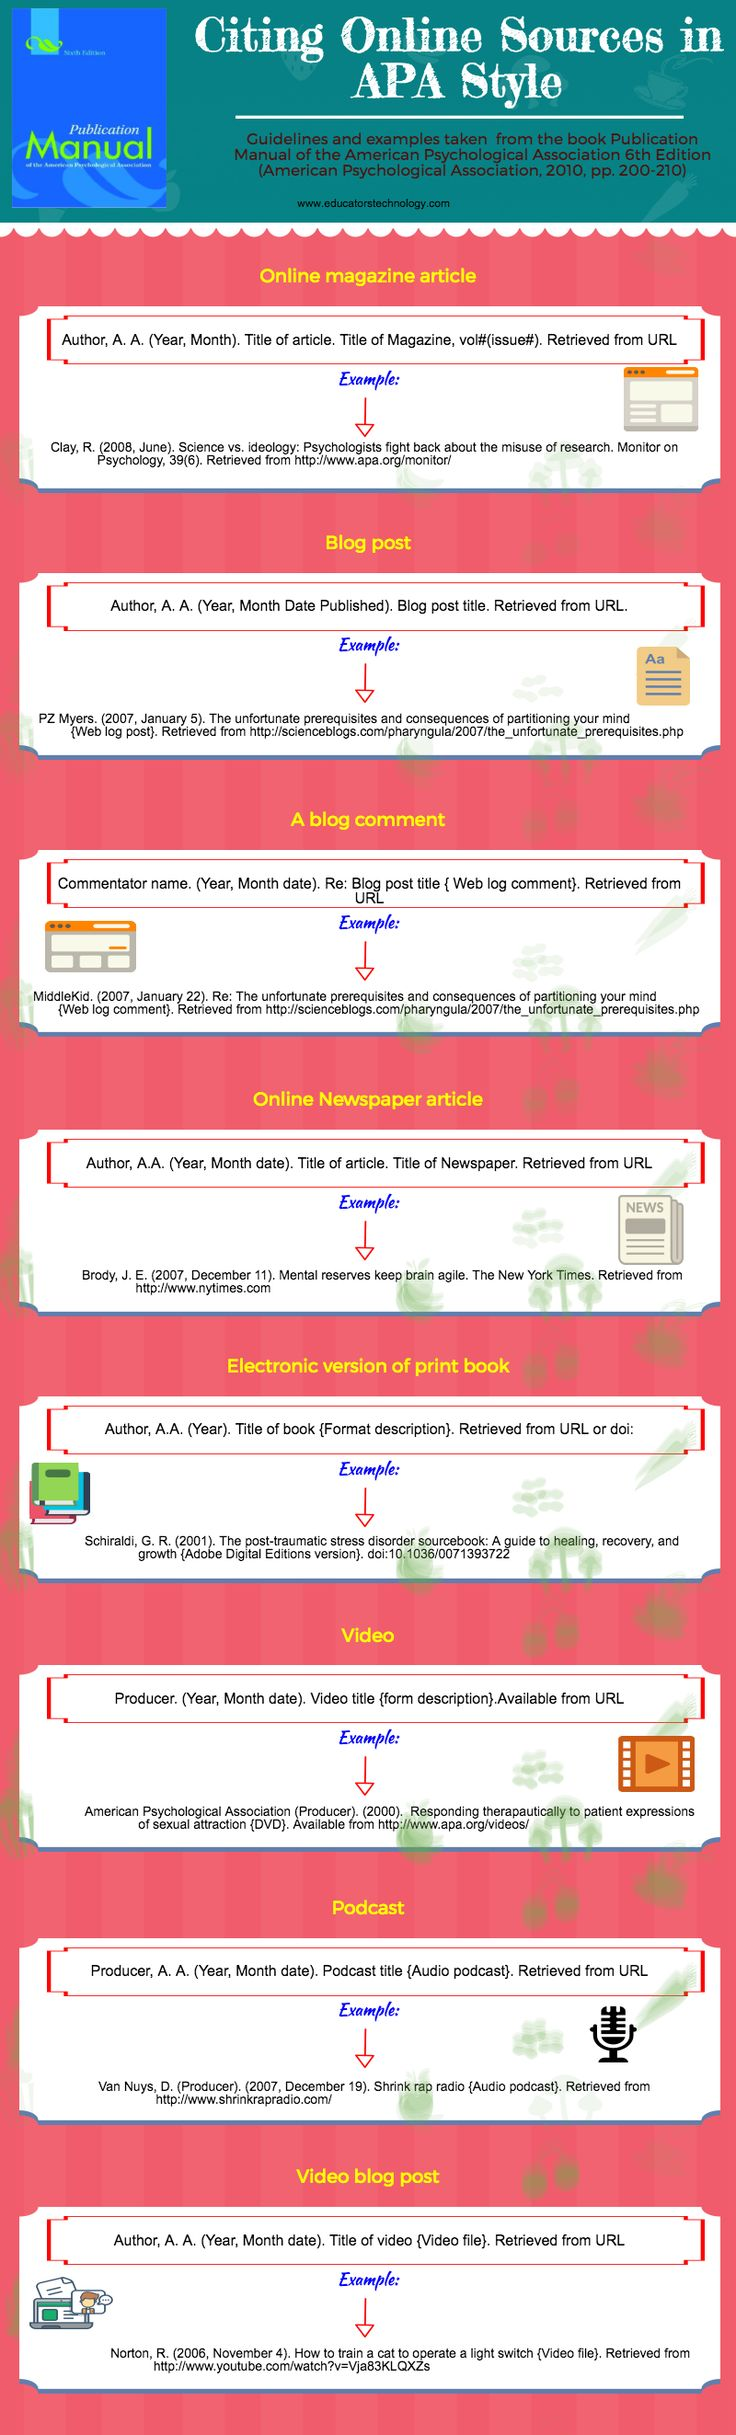 best ideas about apa citation apa style an interesting visual on how to cite online sources in apa style